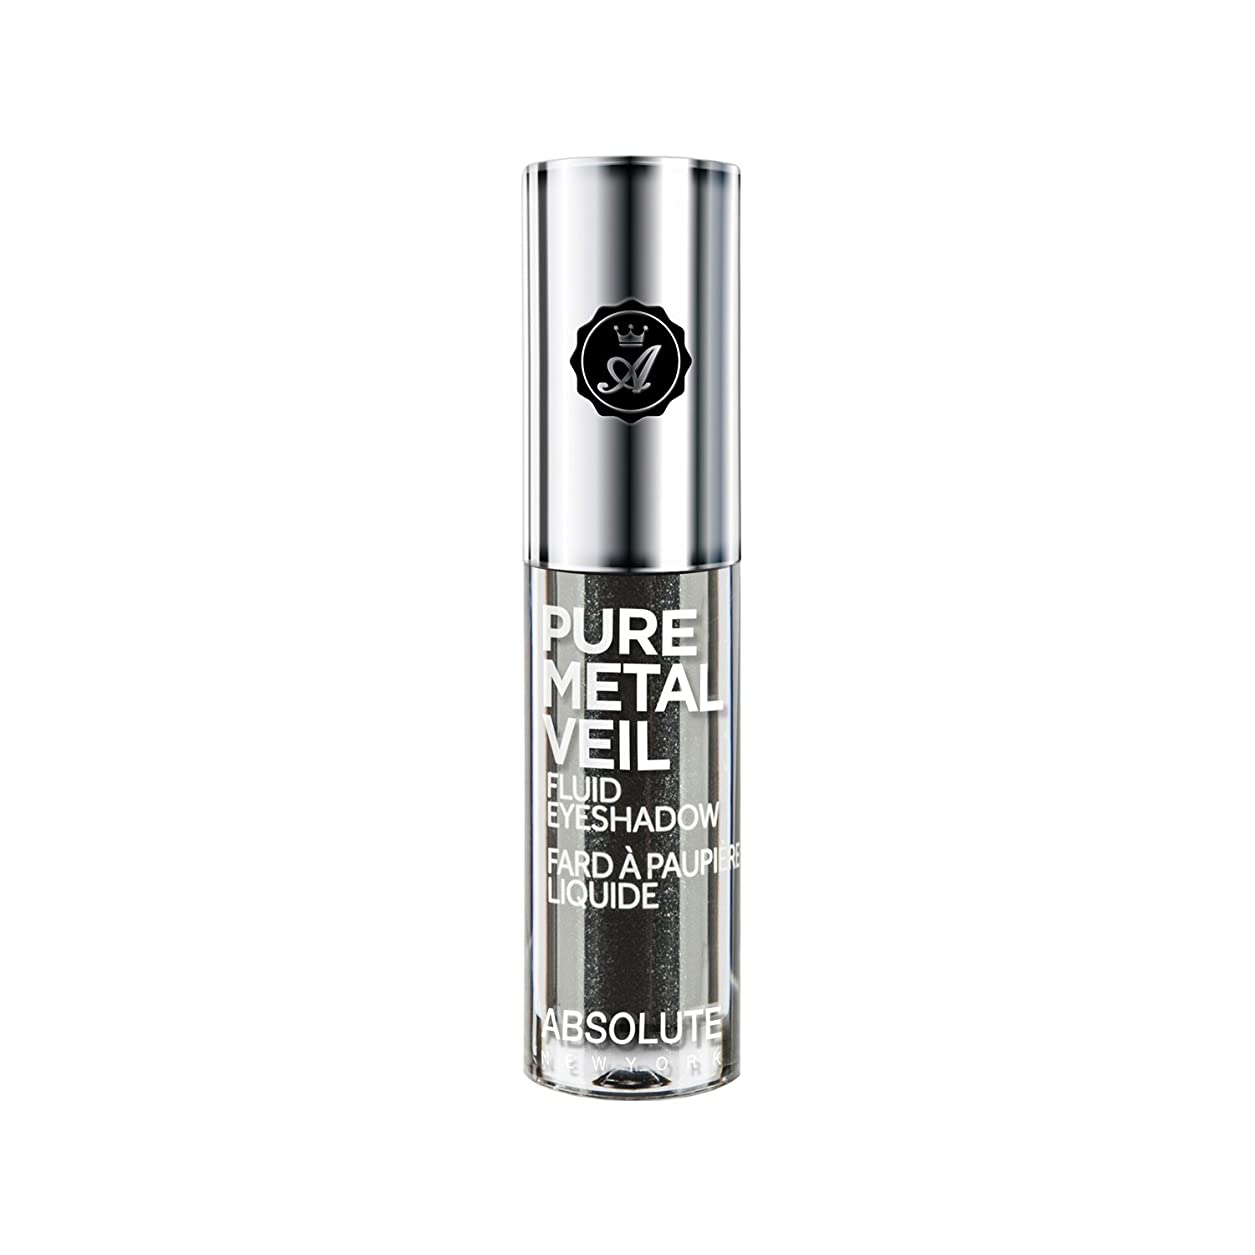 固体せがむインタビューABSOLUTE Pure Metal Veil Fluid Eyeshadow - Gunmetal (並行輸入品)